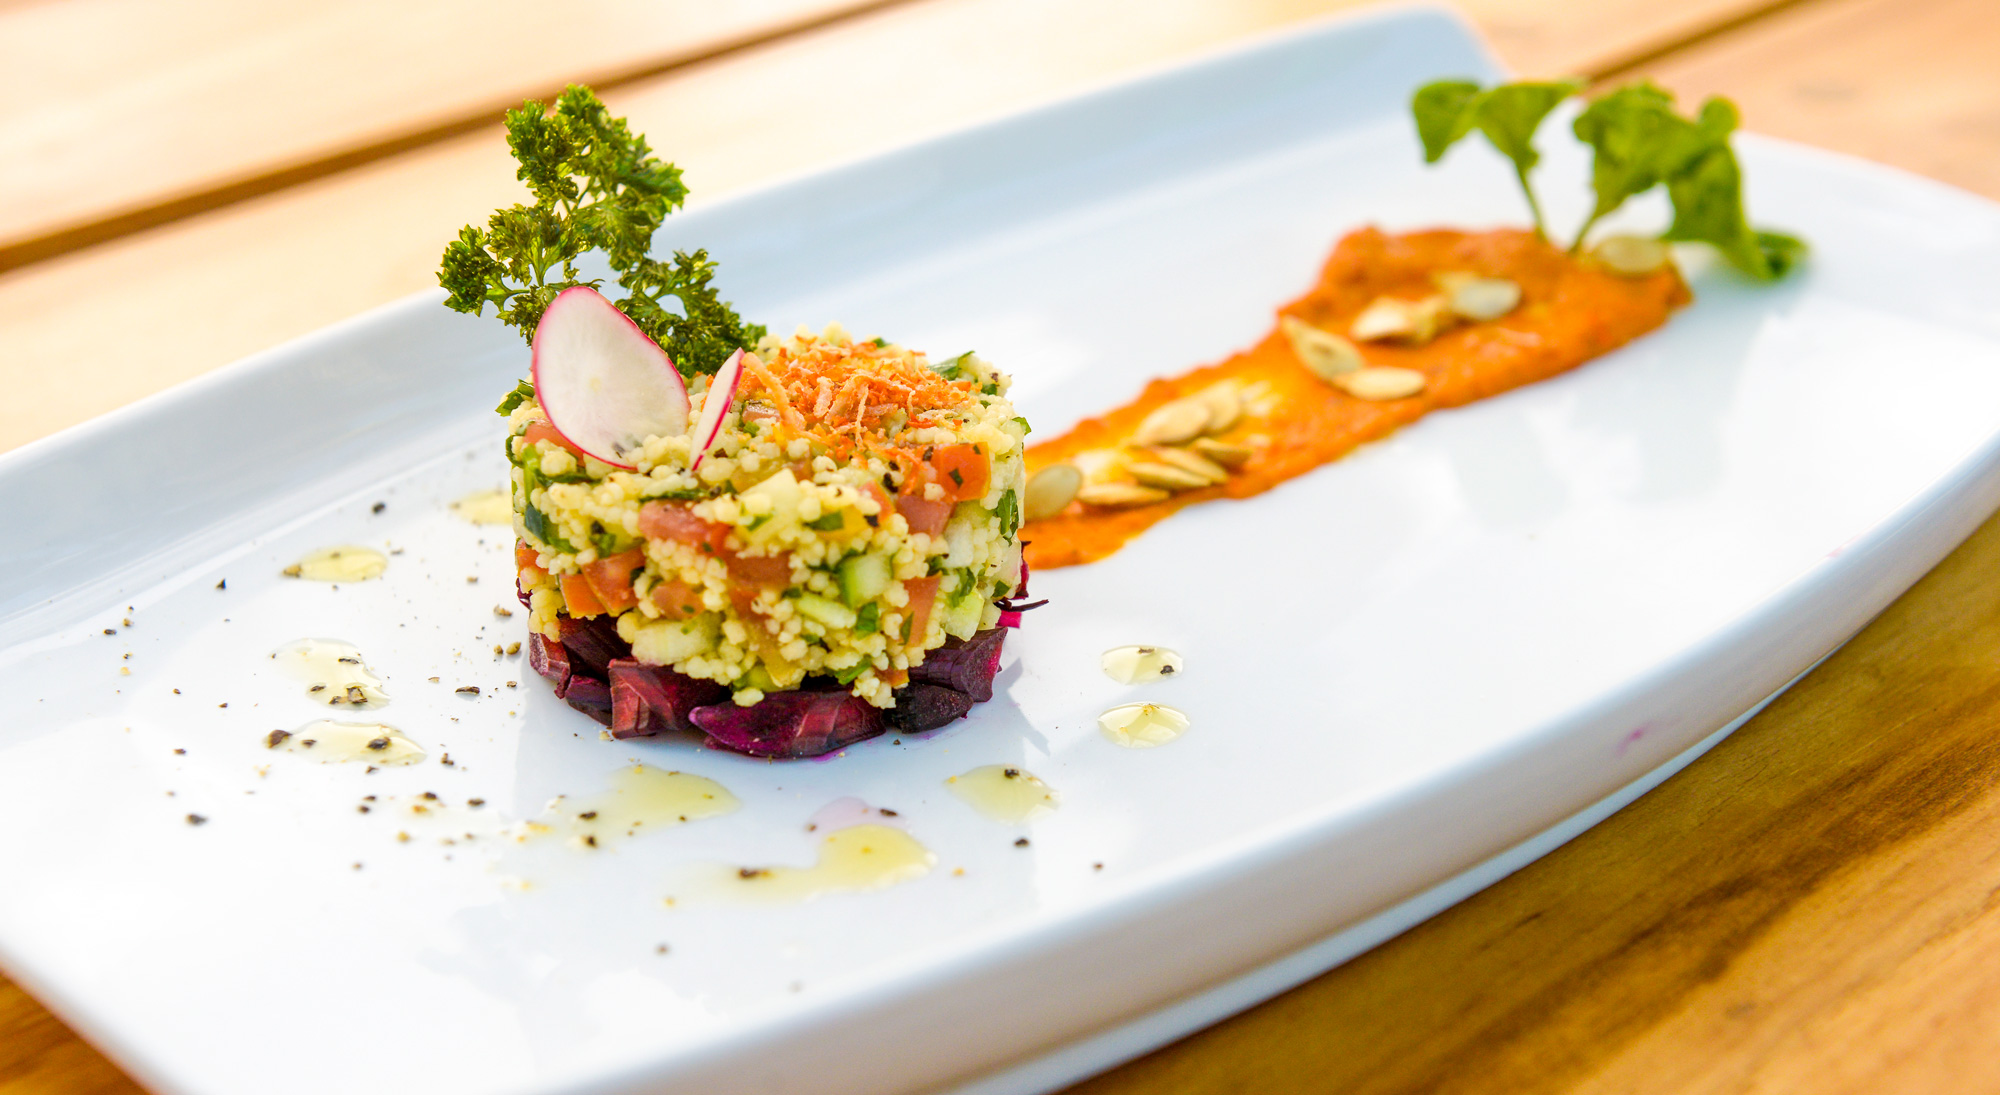 Couscous-with-maracuja-on-beetroot-with-a-jalepeno-and-grilled-peppers-mayonnaise-with-deep-fried-parsley.jpg